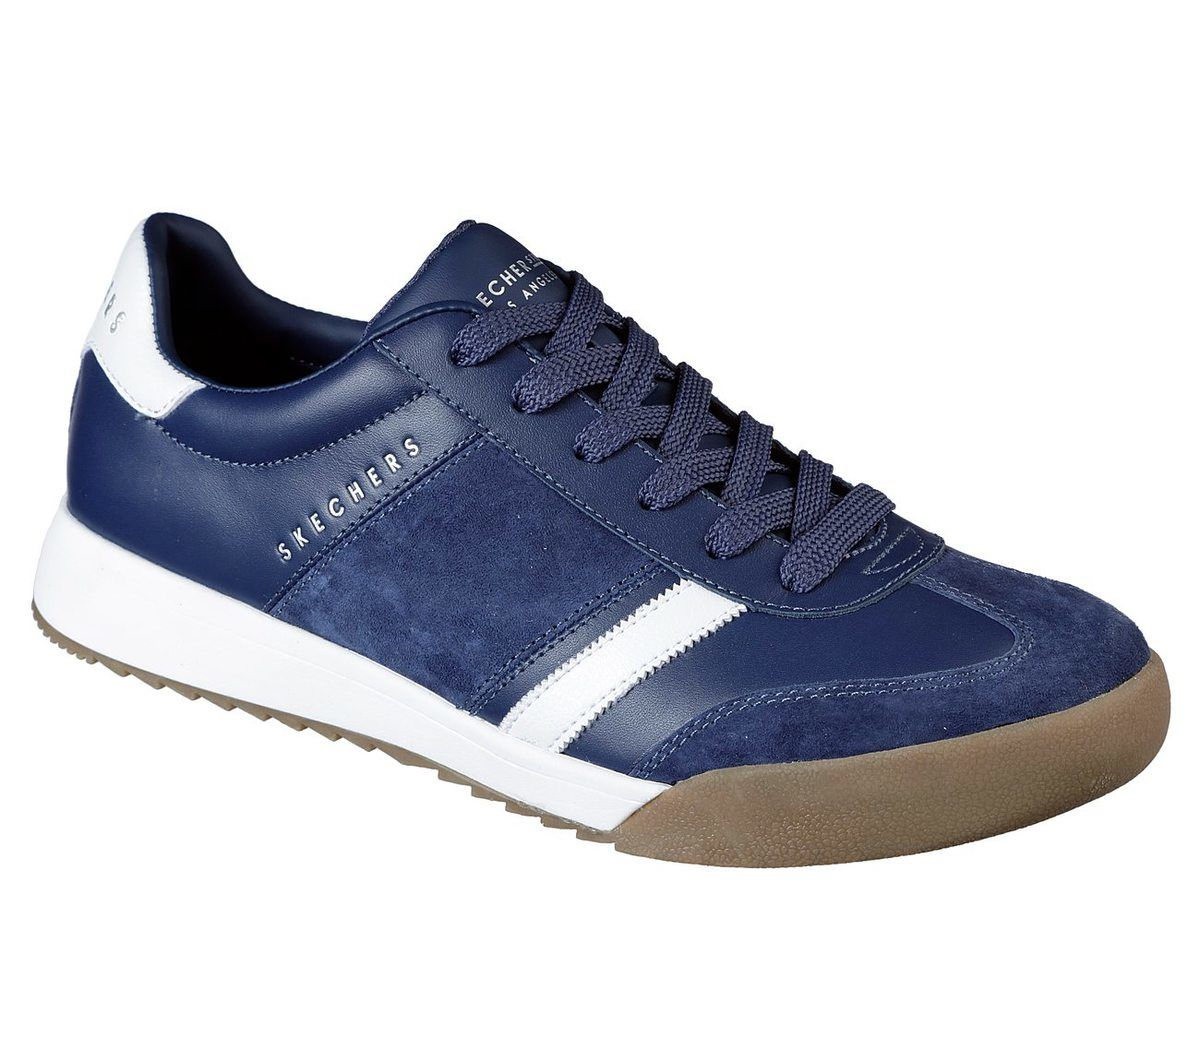 Pino Pase para saber Sureste  Skechers Zinger Scobie 52322 NVY Navy trainers